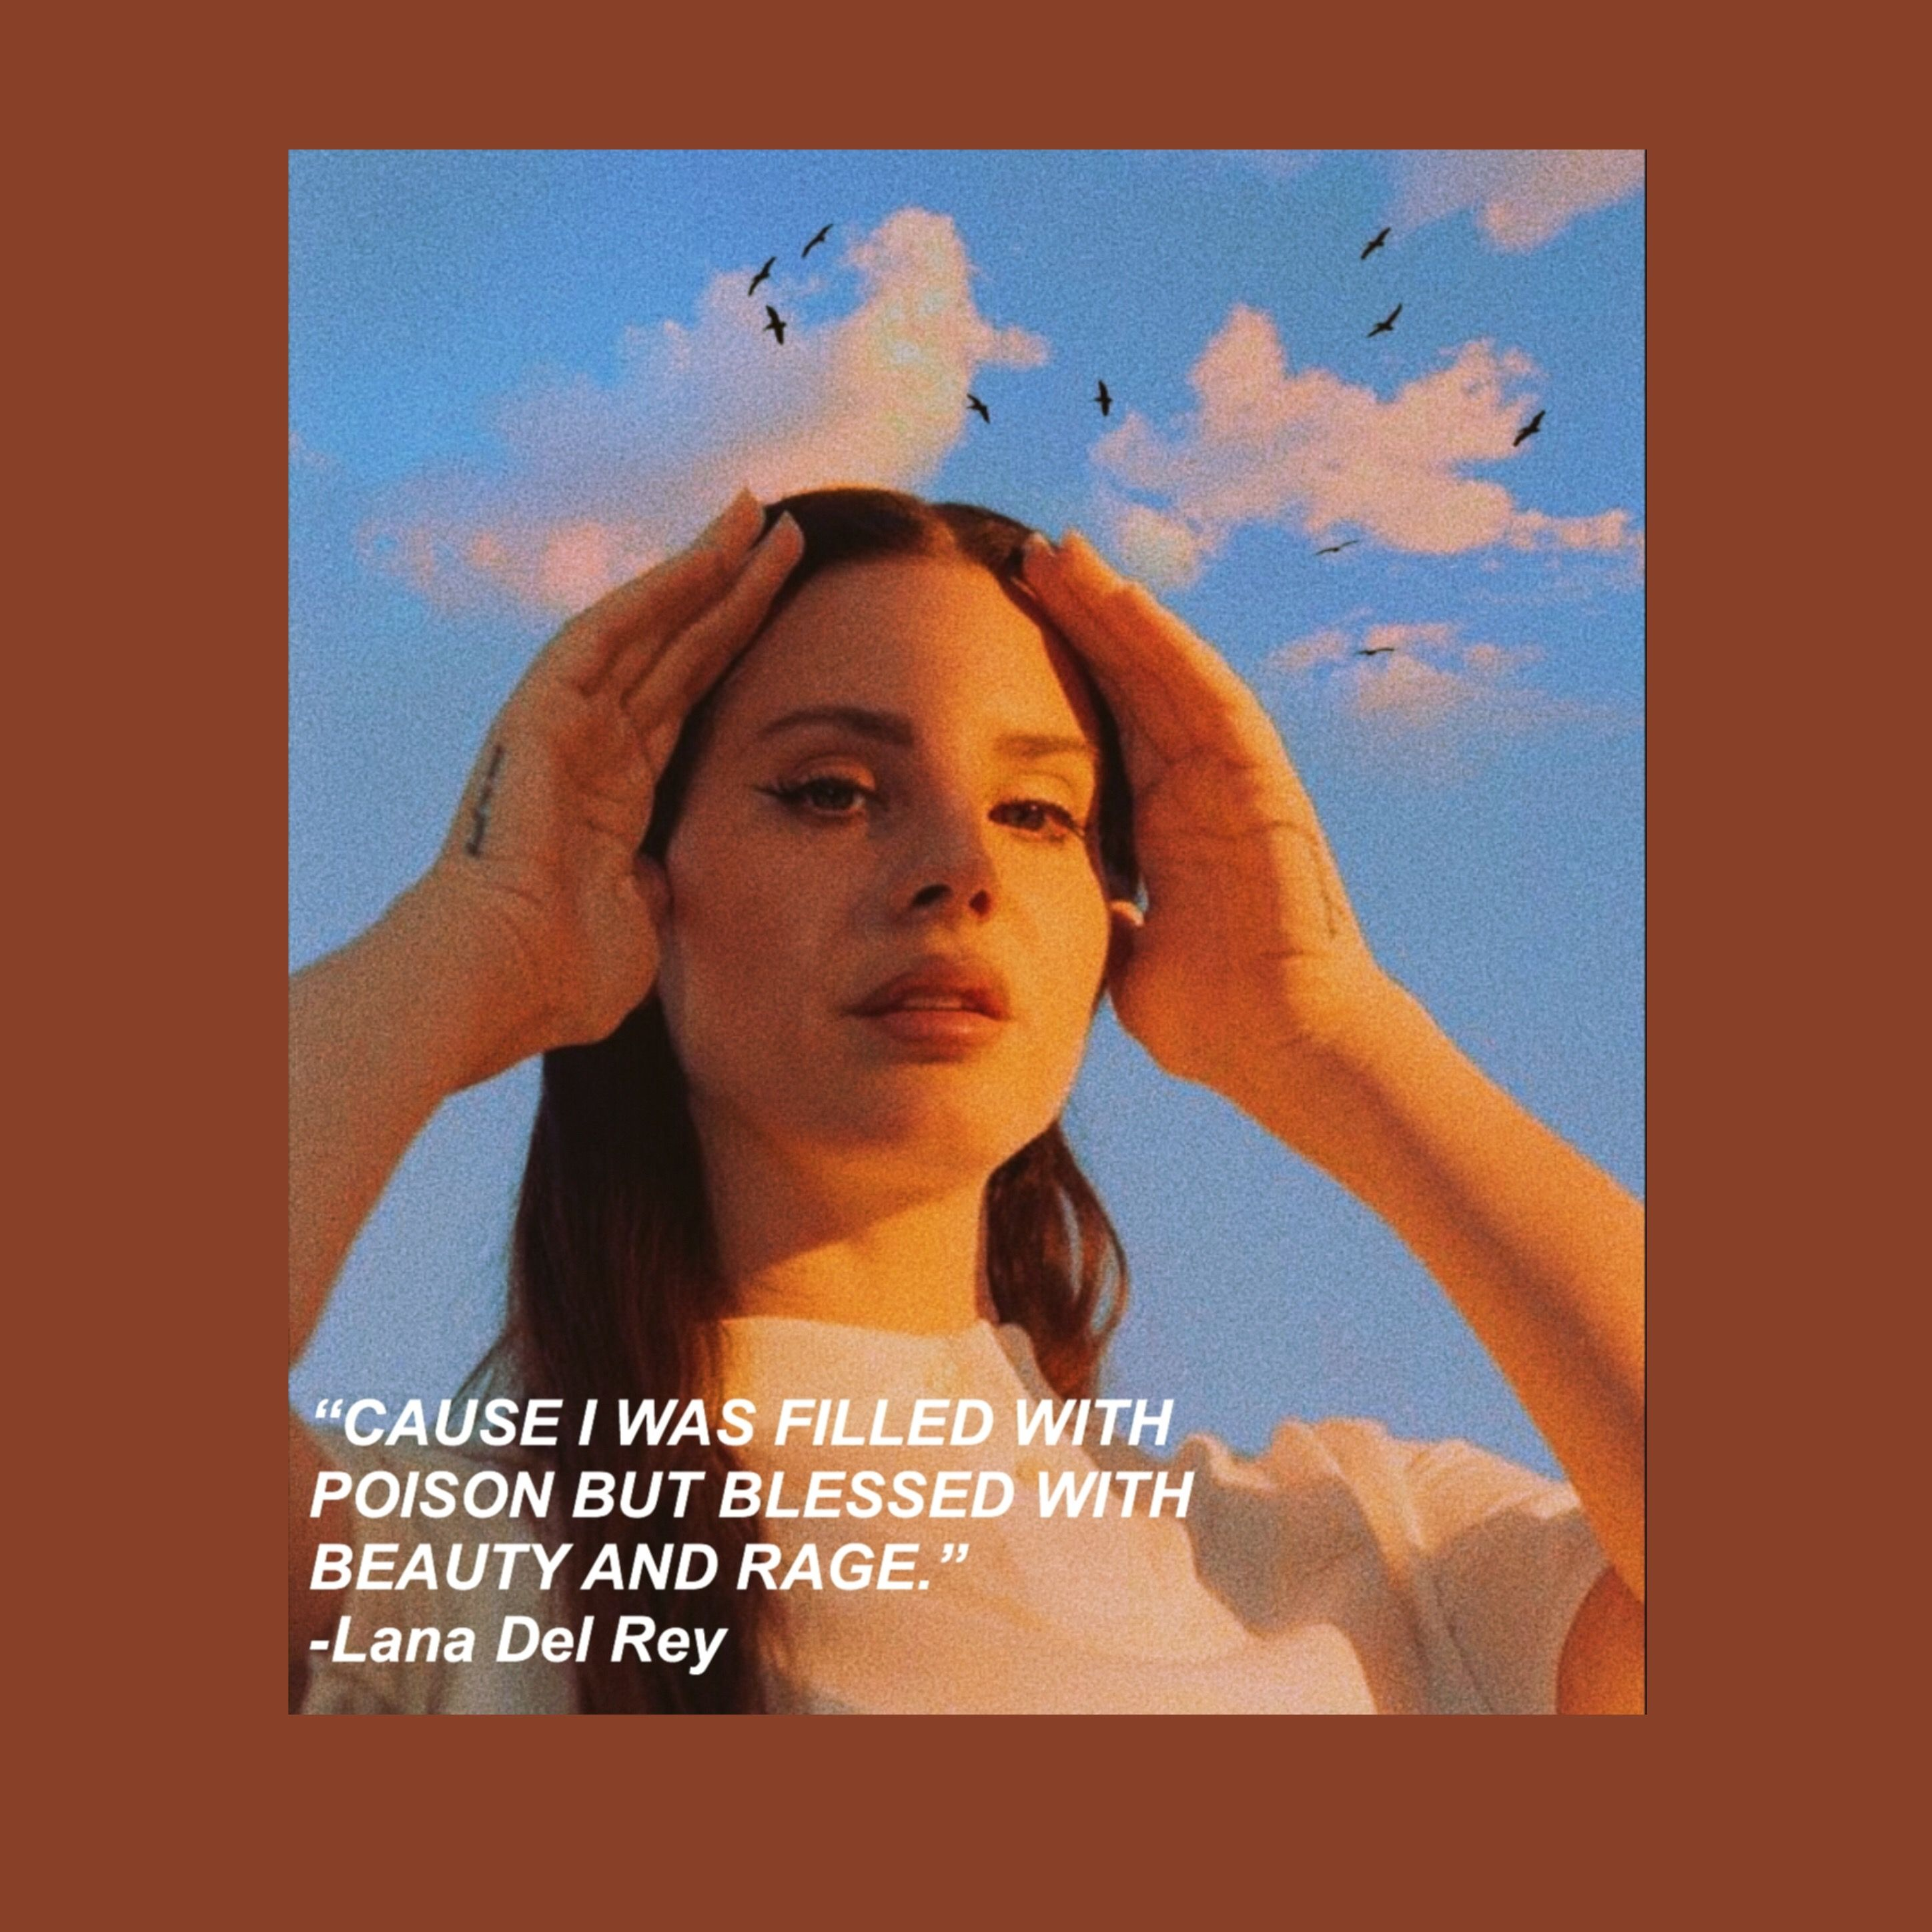 Pin by ‼️𝔙𝔬𝔡𝔞𝔠𝔦𝔬𝔲𝔰‼️ on 『 Artsy Club 』 Lana del rey